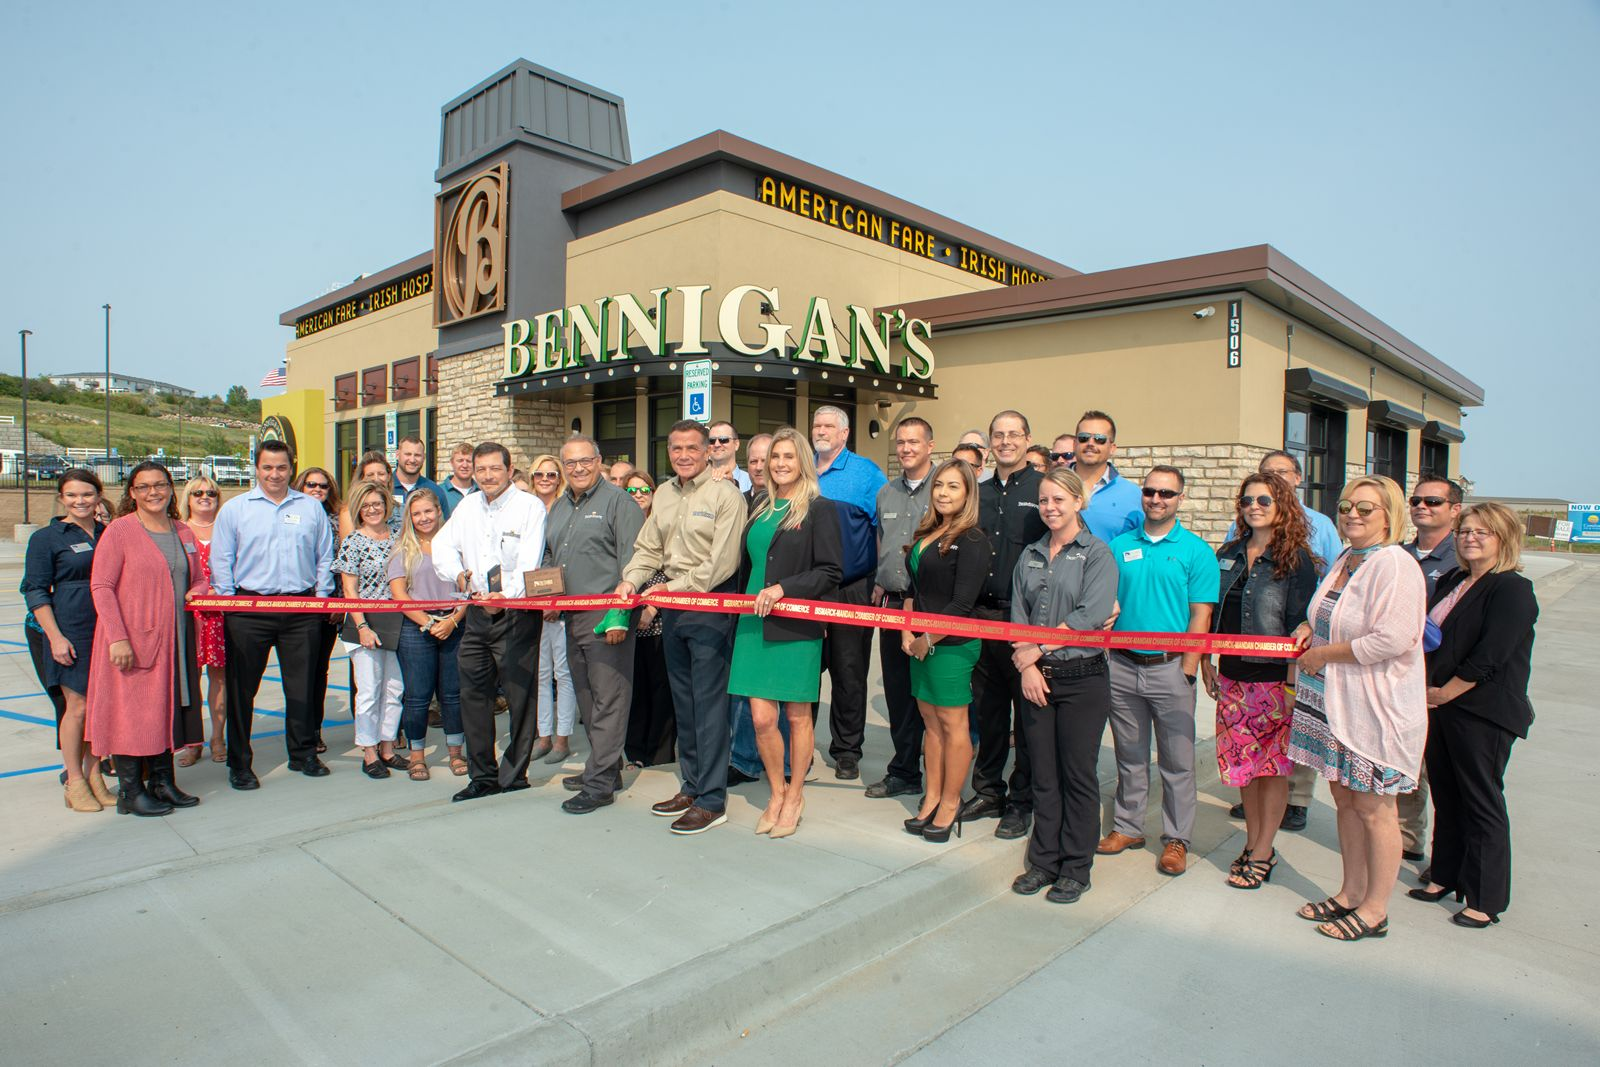 Bennigan's Continues Growth in Small-Town America with New North Dakota Restaurant